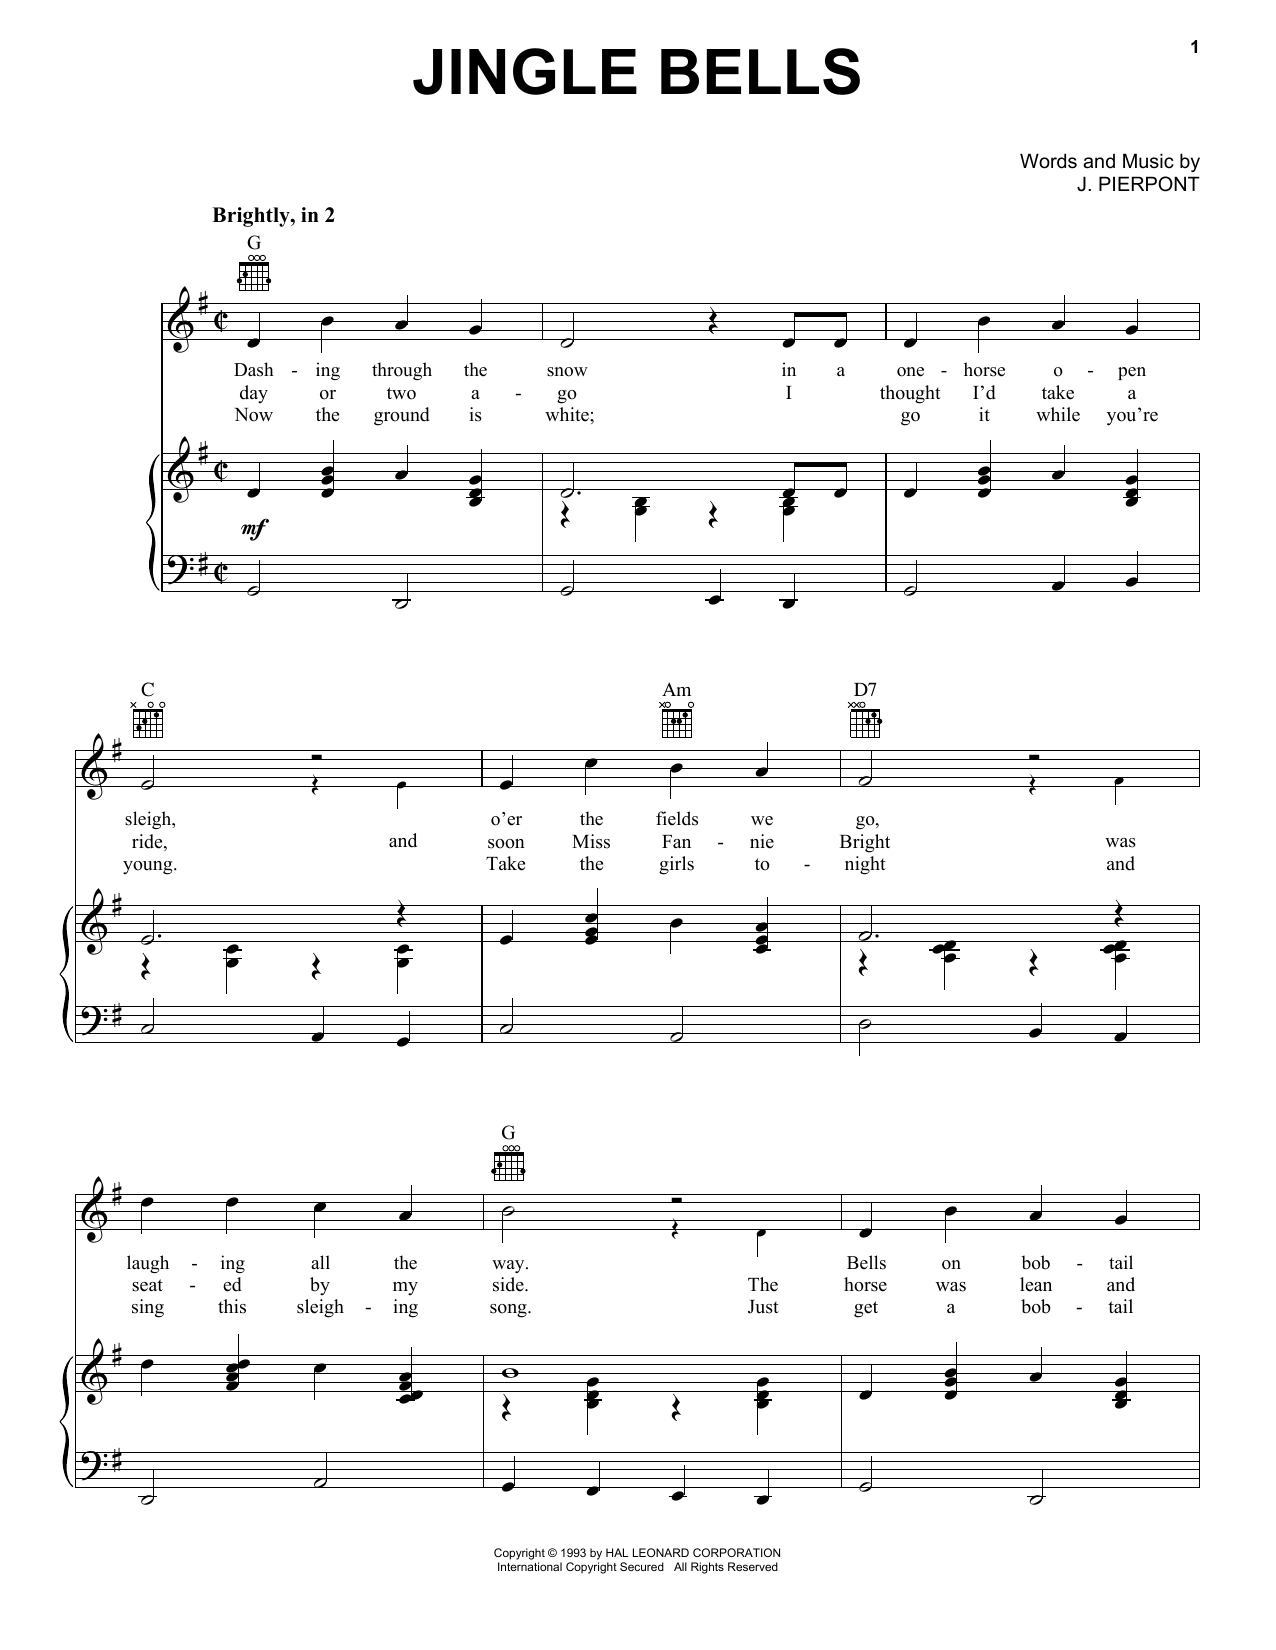 J. Pierpont Jingle Bells sheet music notes and chords. Download Printable PDF.